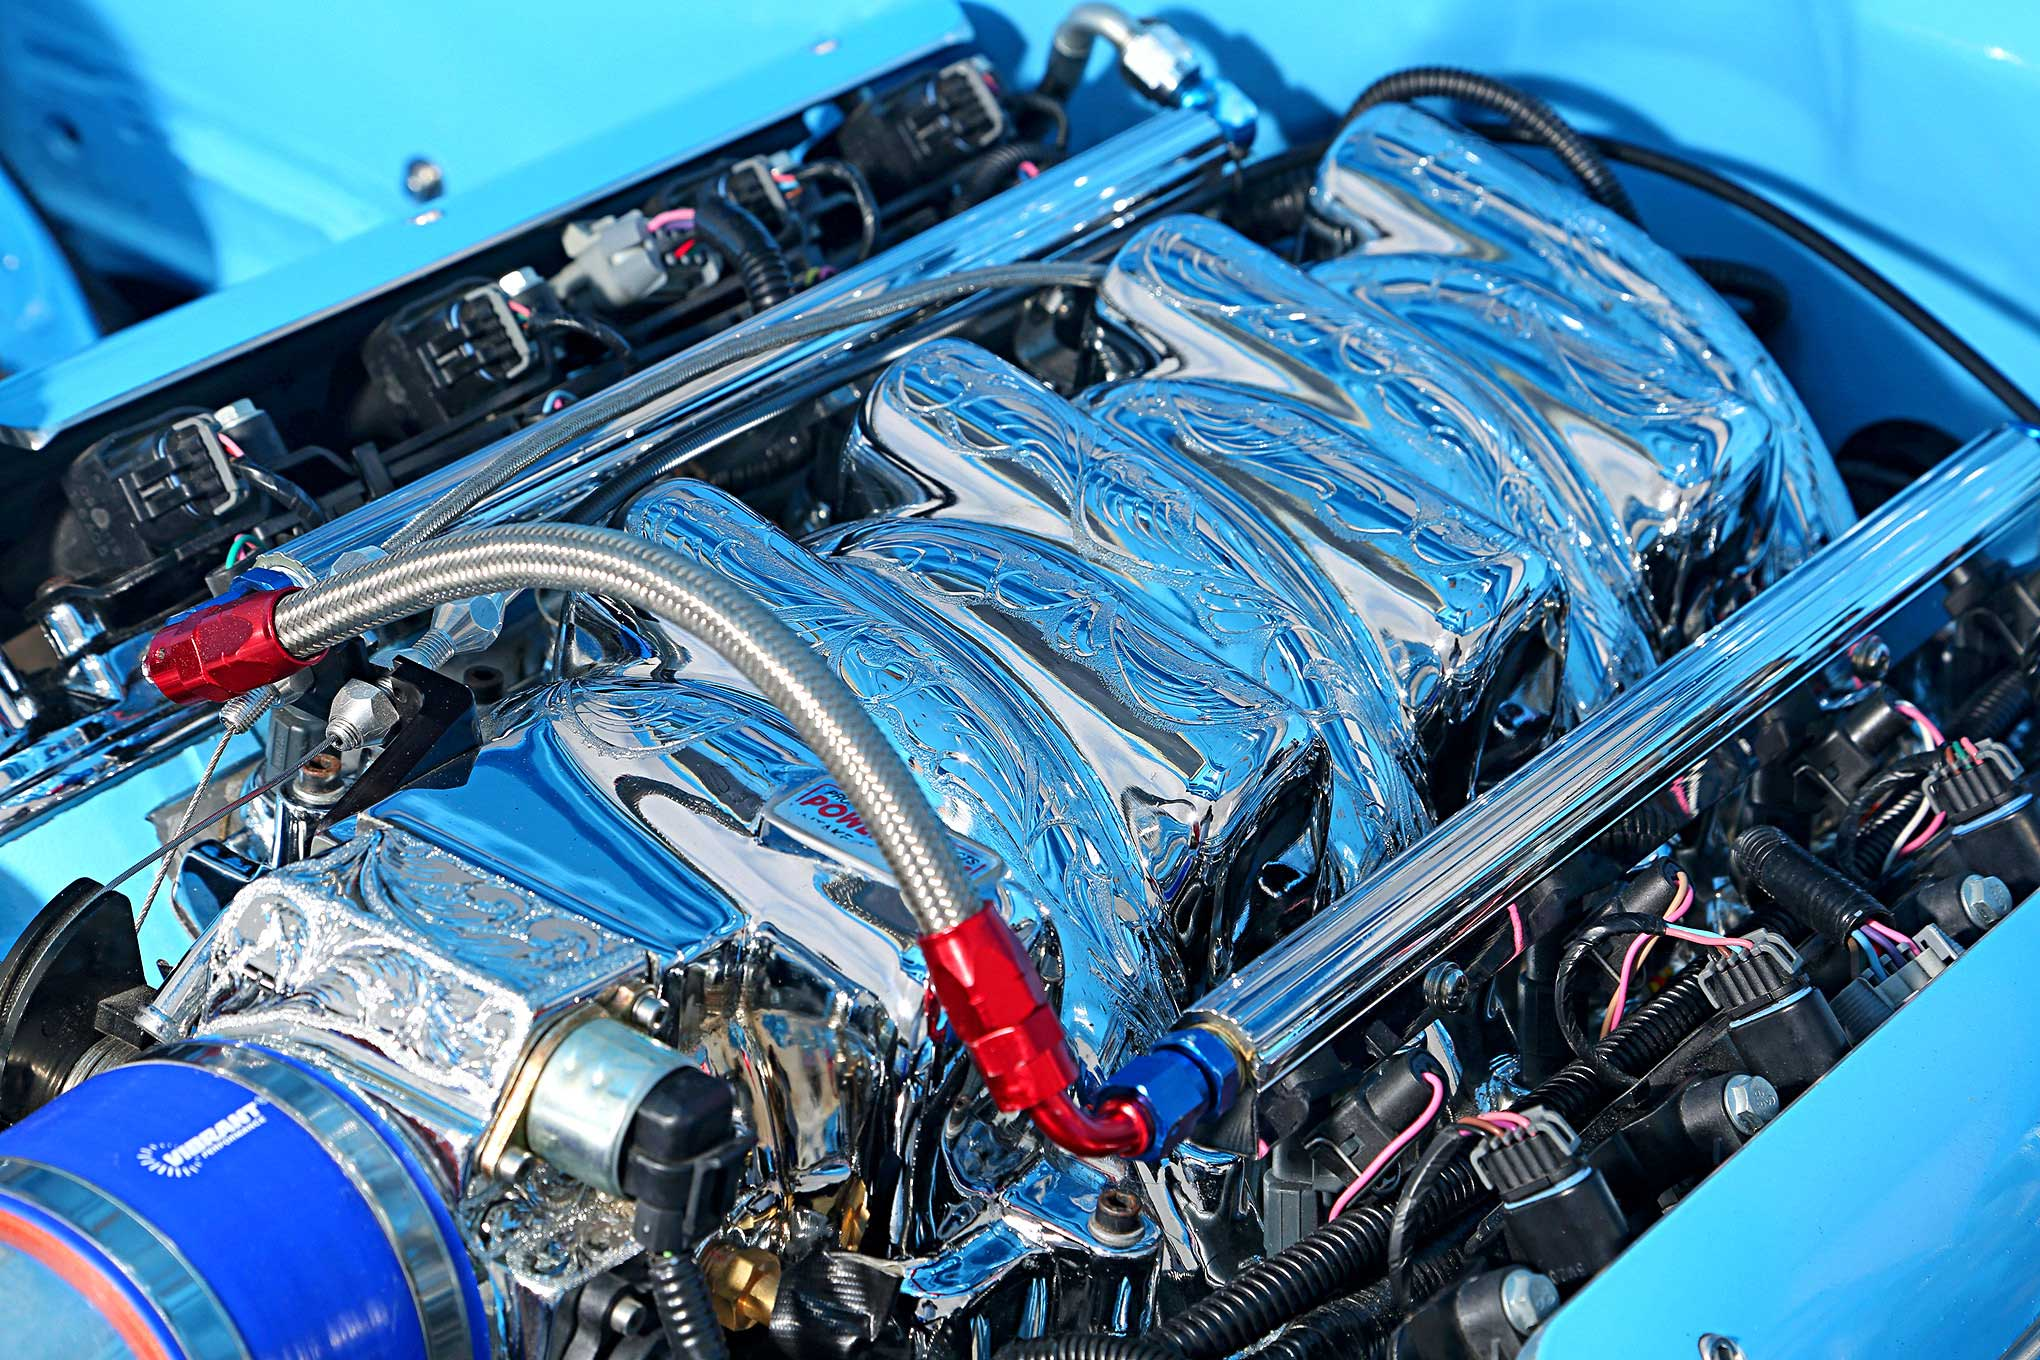 LS1 5.7 with Lokar valve covers, Vintage Air water pump and alternator,  Professional Products fuel injection and intake, Bosch starter, Accel  ignition, ...